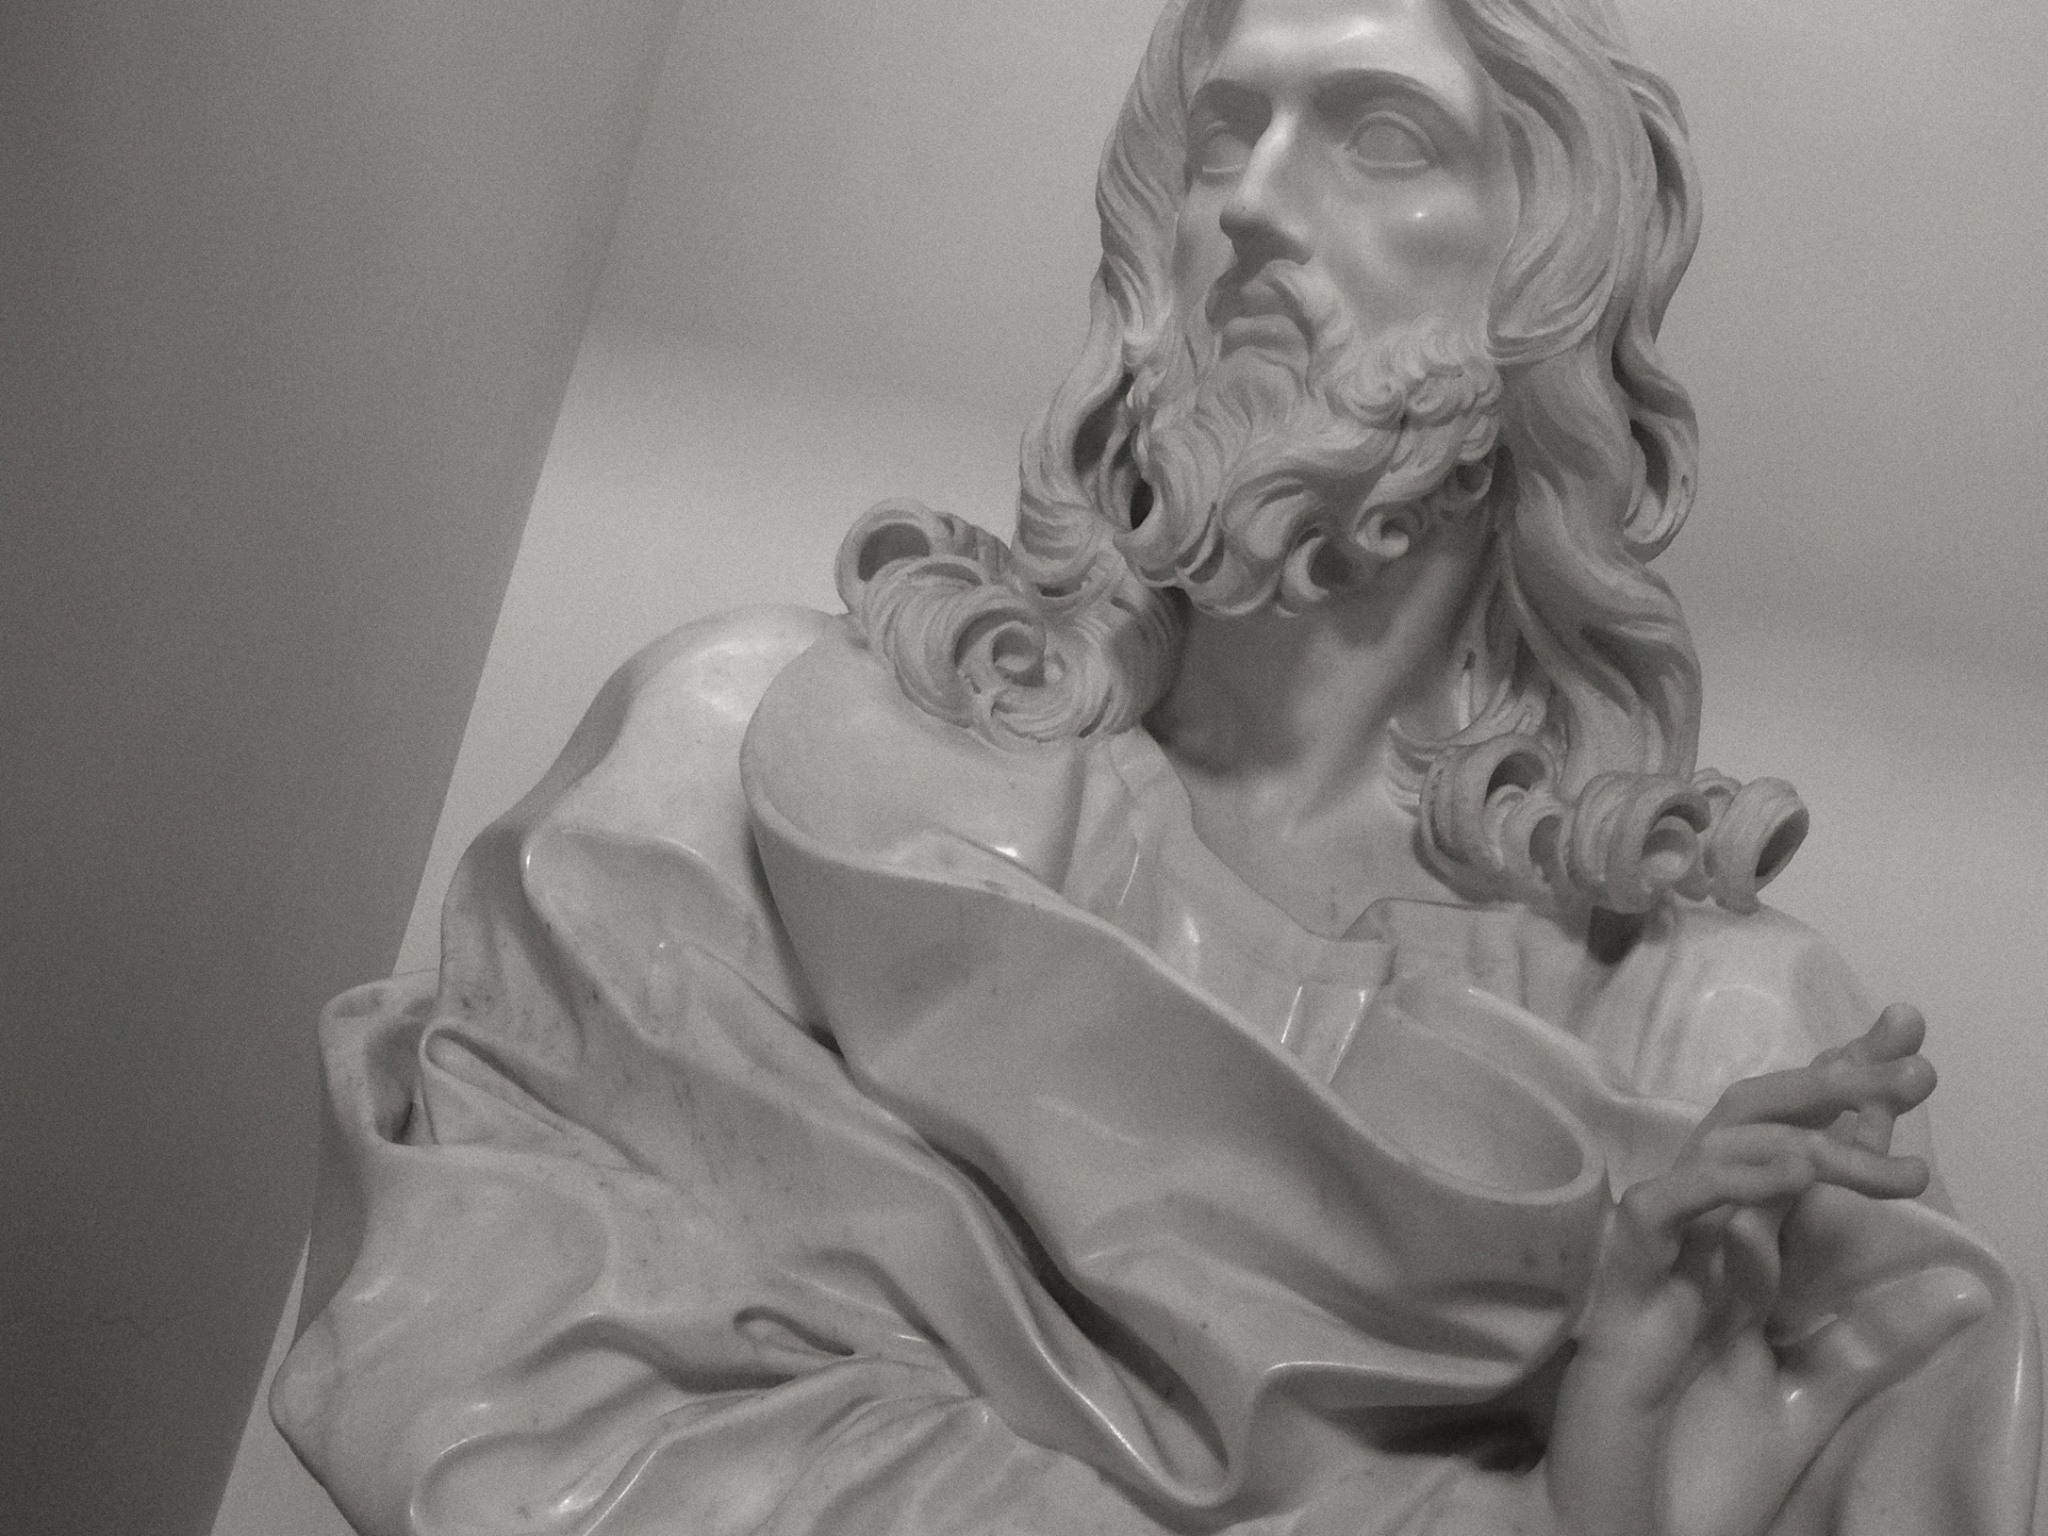 the last bernini is the salvator mundi by pina baglioni sandro cristo salvatore di g l bernini basilica s sebastiano roma